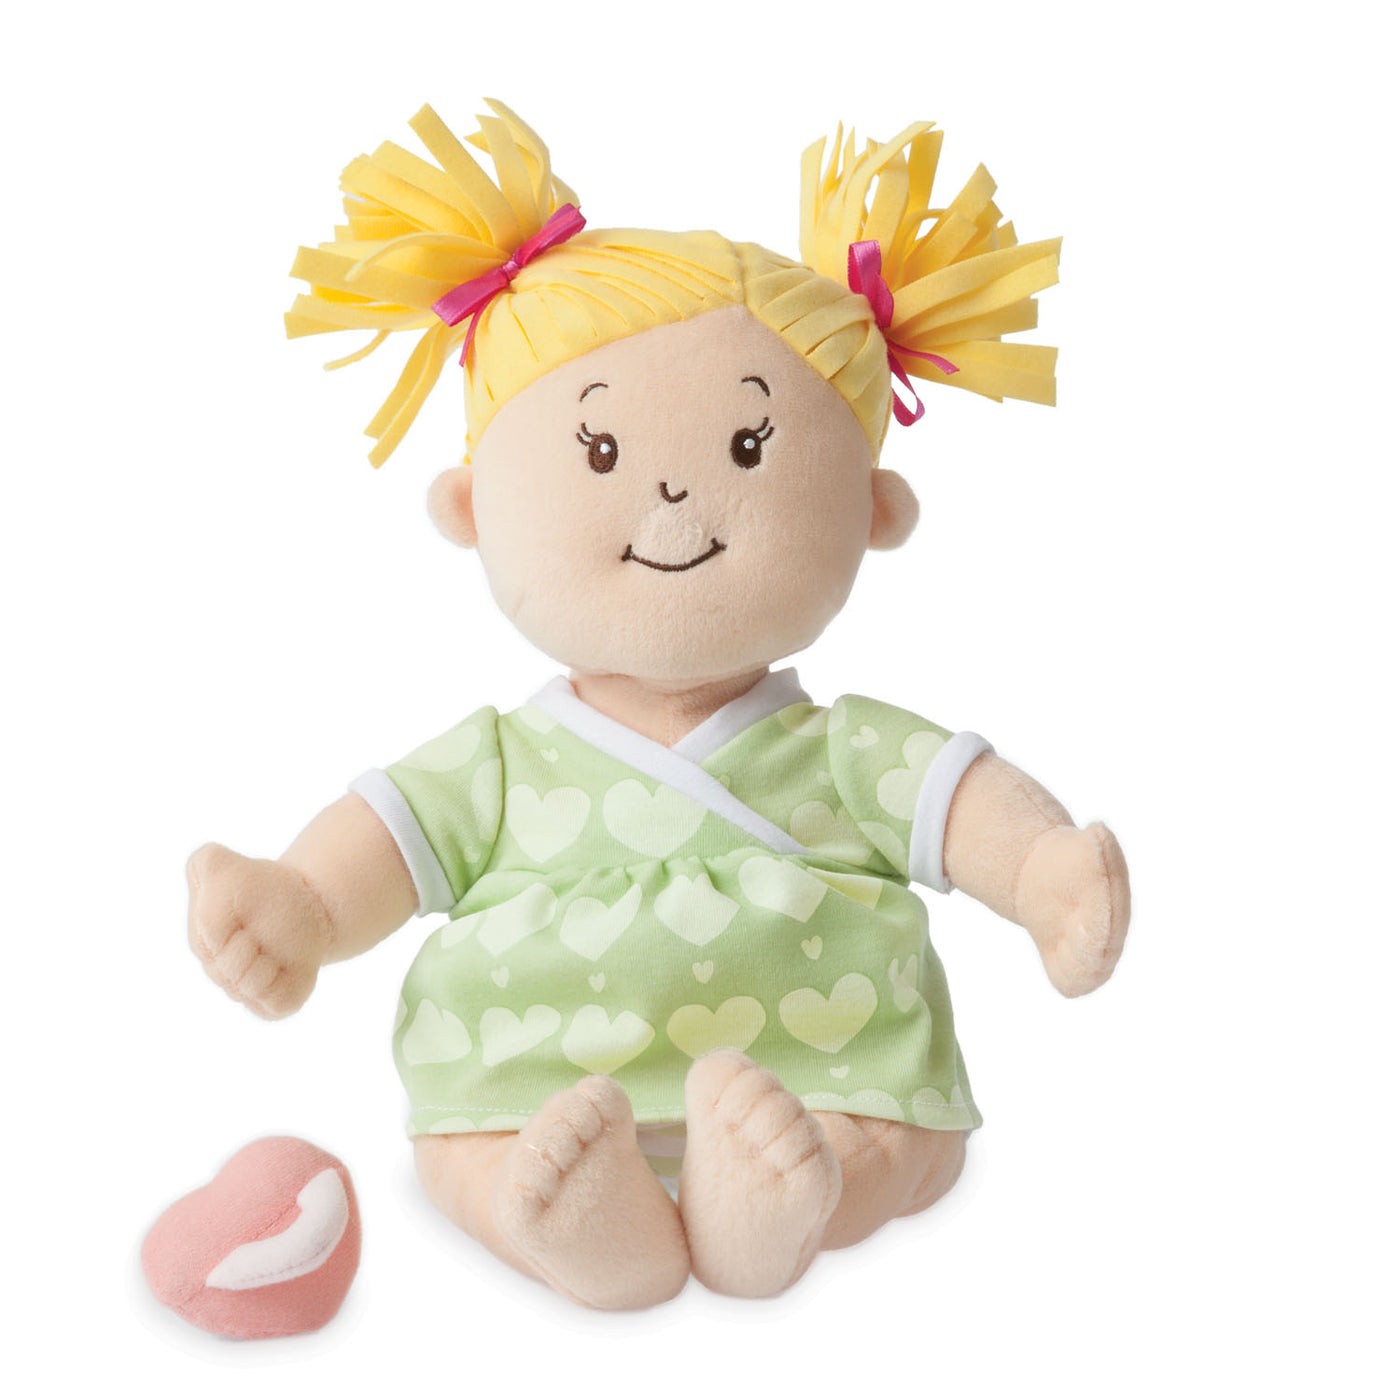 Baby Stella Blonde Doll - Manhattan Toy